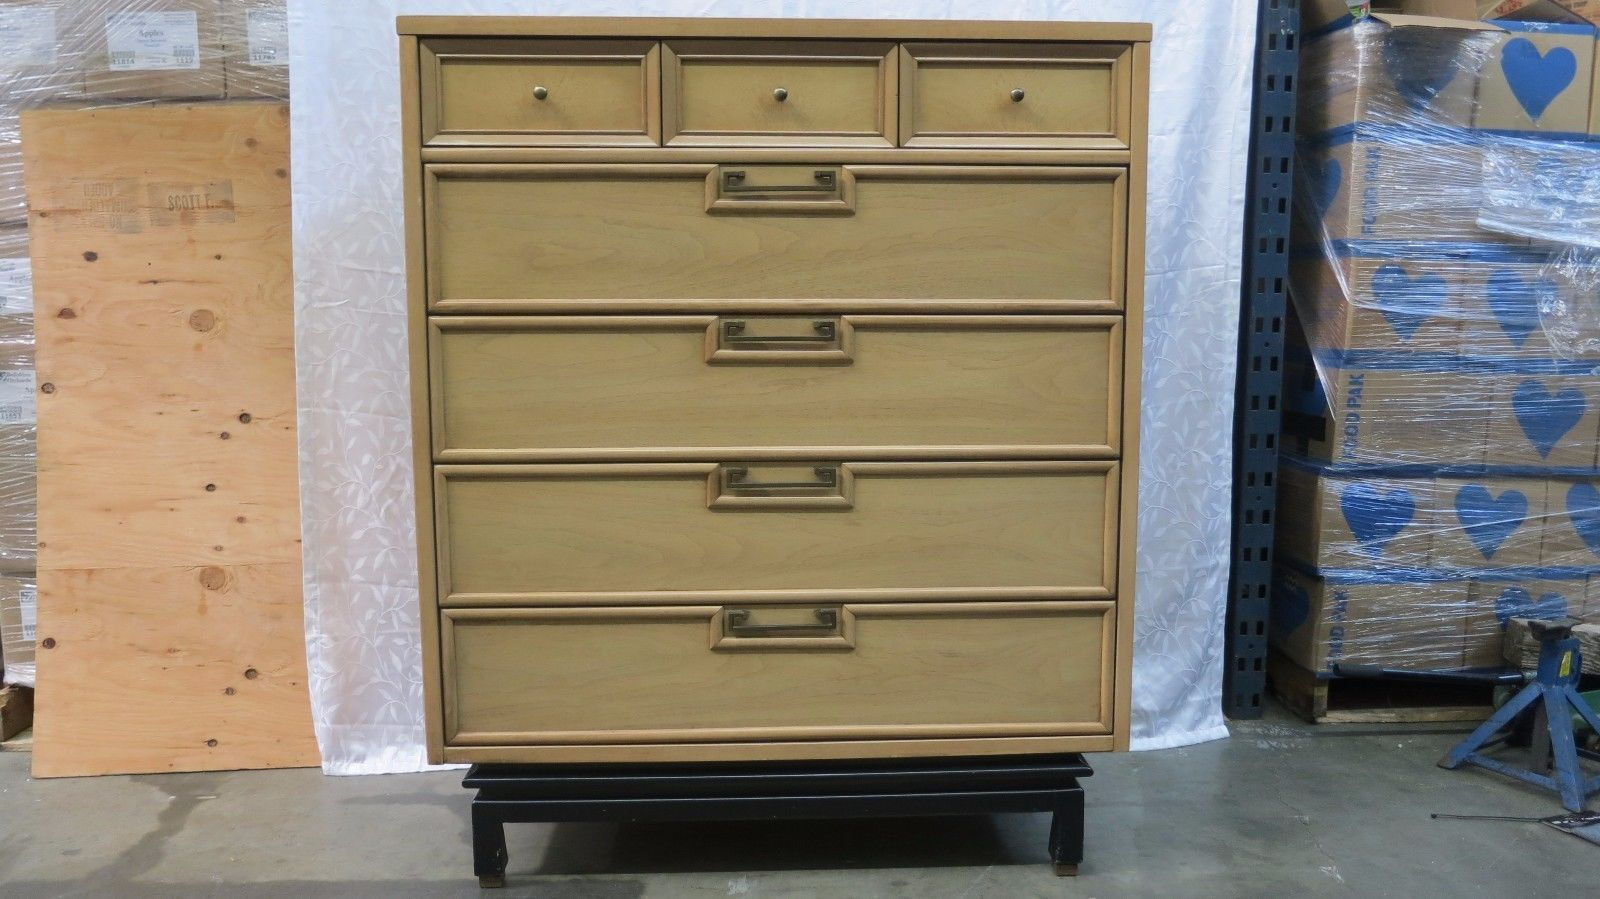 This Is A 1960 39 S Six Piece Bleached Mahogany Bedroom Set By American Of Martinsville Features Drop Ring Bedroom Set Mid Century Dresser Midcentury Modern